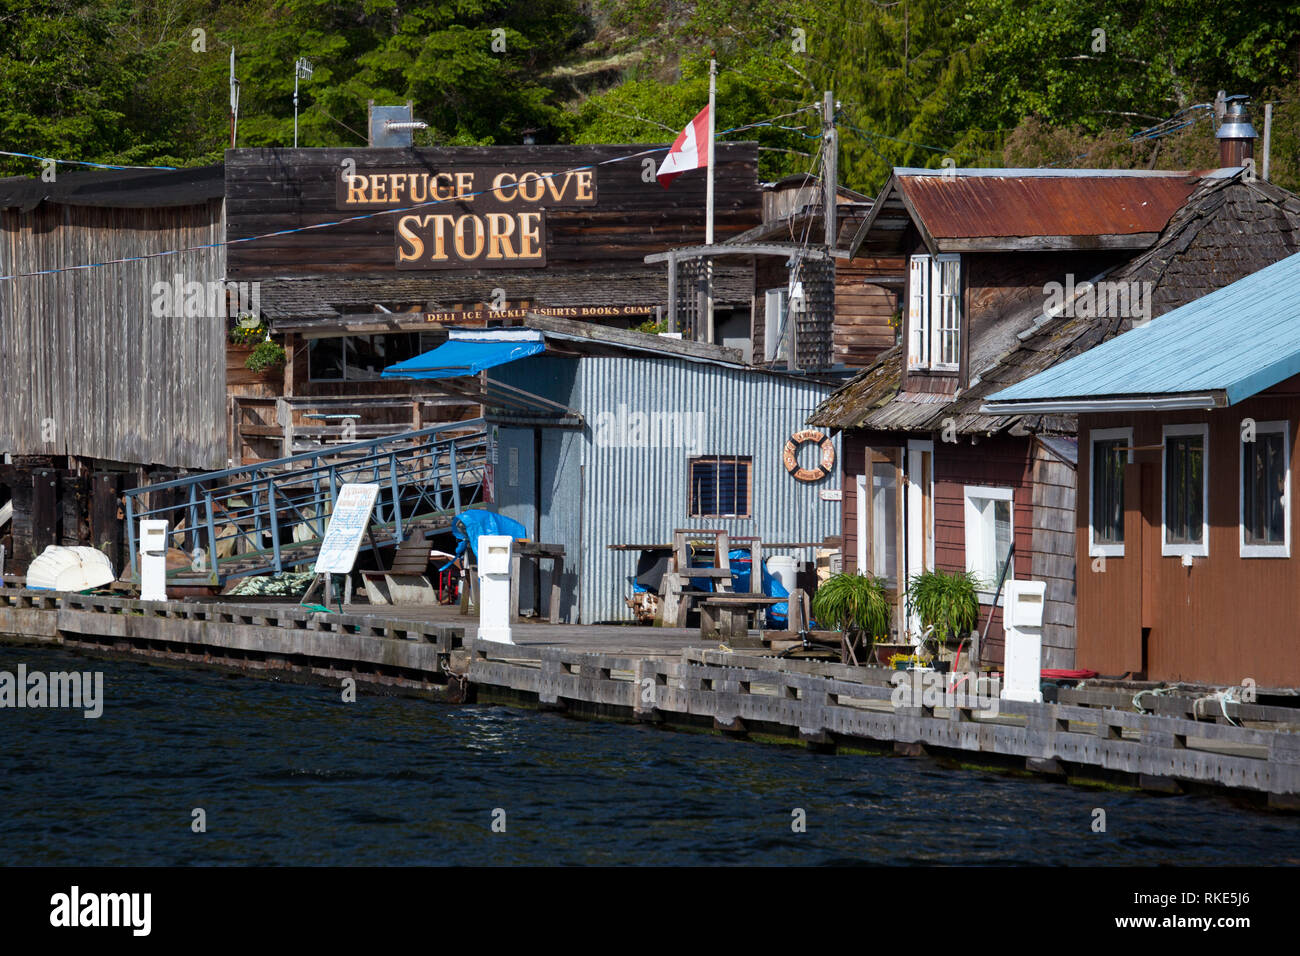 Refuge Cove, Desolation Sound, British Columbia, Canada - Stock Image